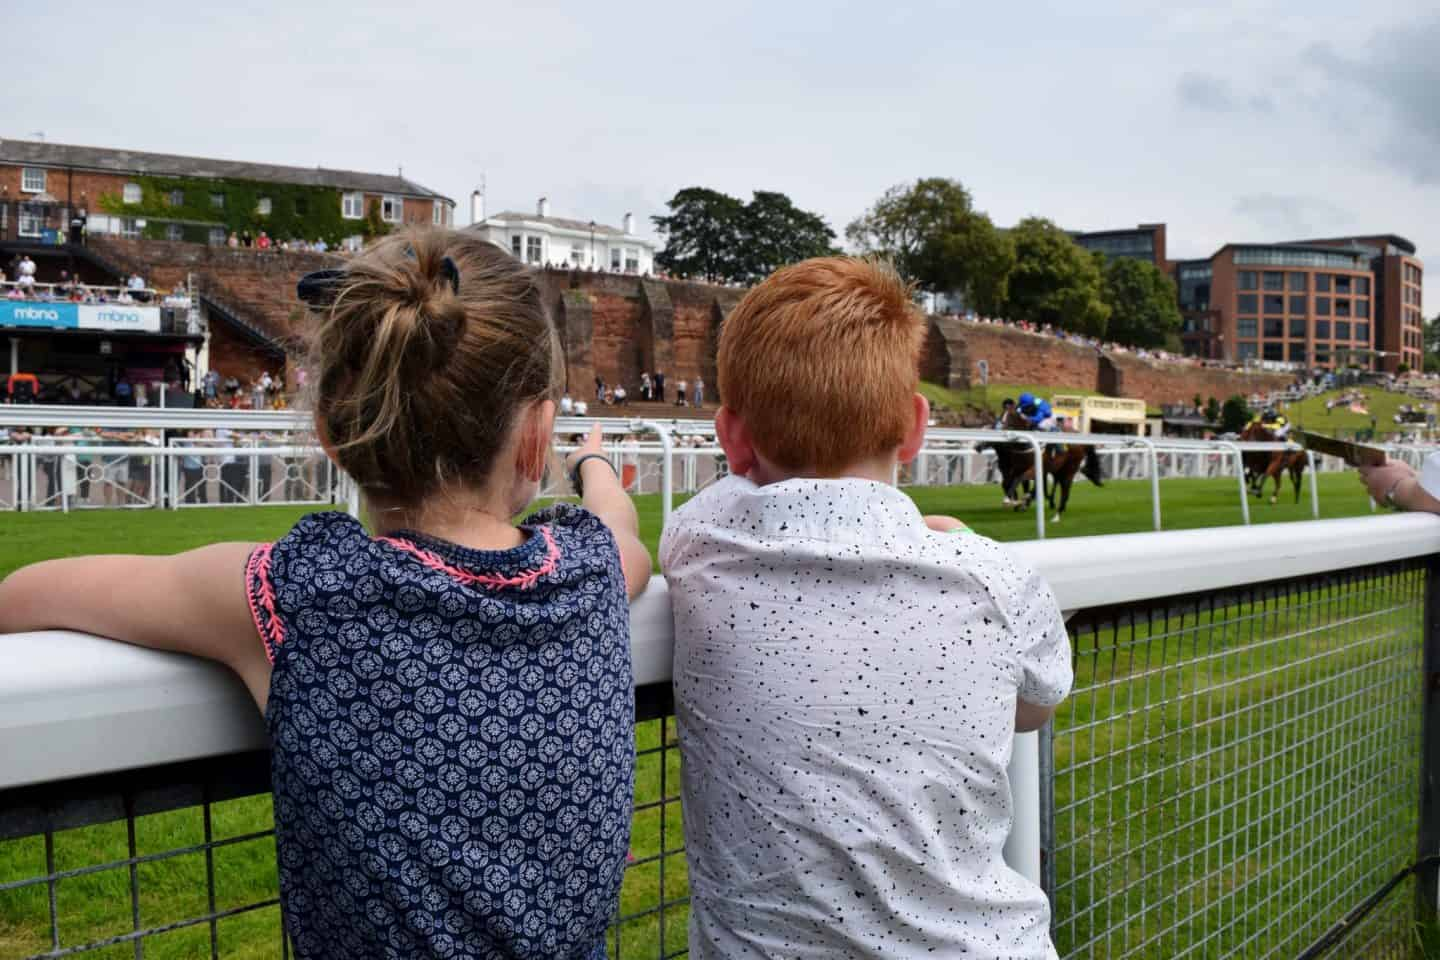 Under 18s Race Free - kids watching the horse racing at Chester Races